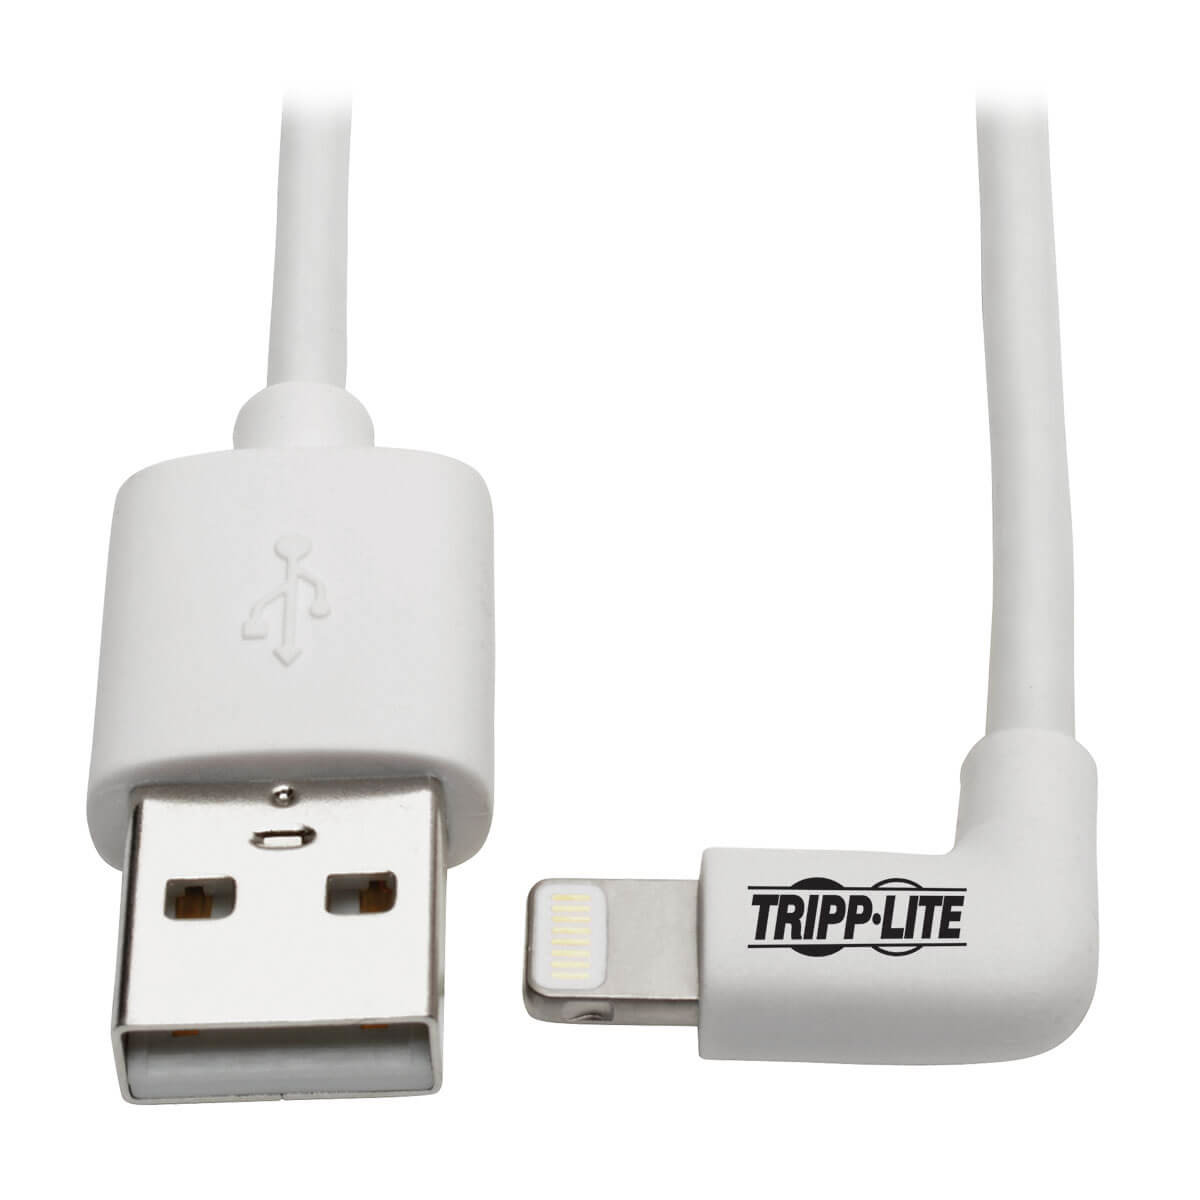 Tripp Lite Right-Angle Lightning Cable, USB Type-A to Lightning, 0.91 m Cord, Reversible Lightning Plug